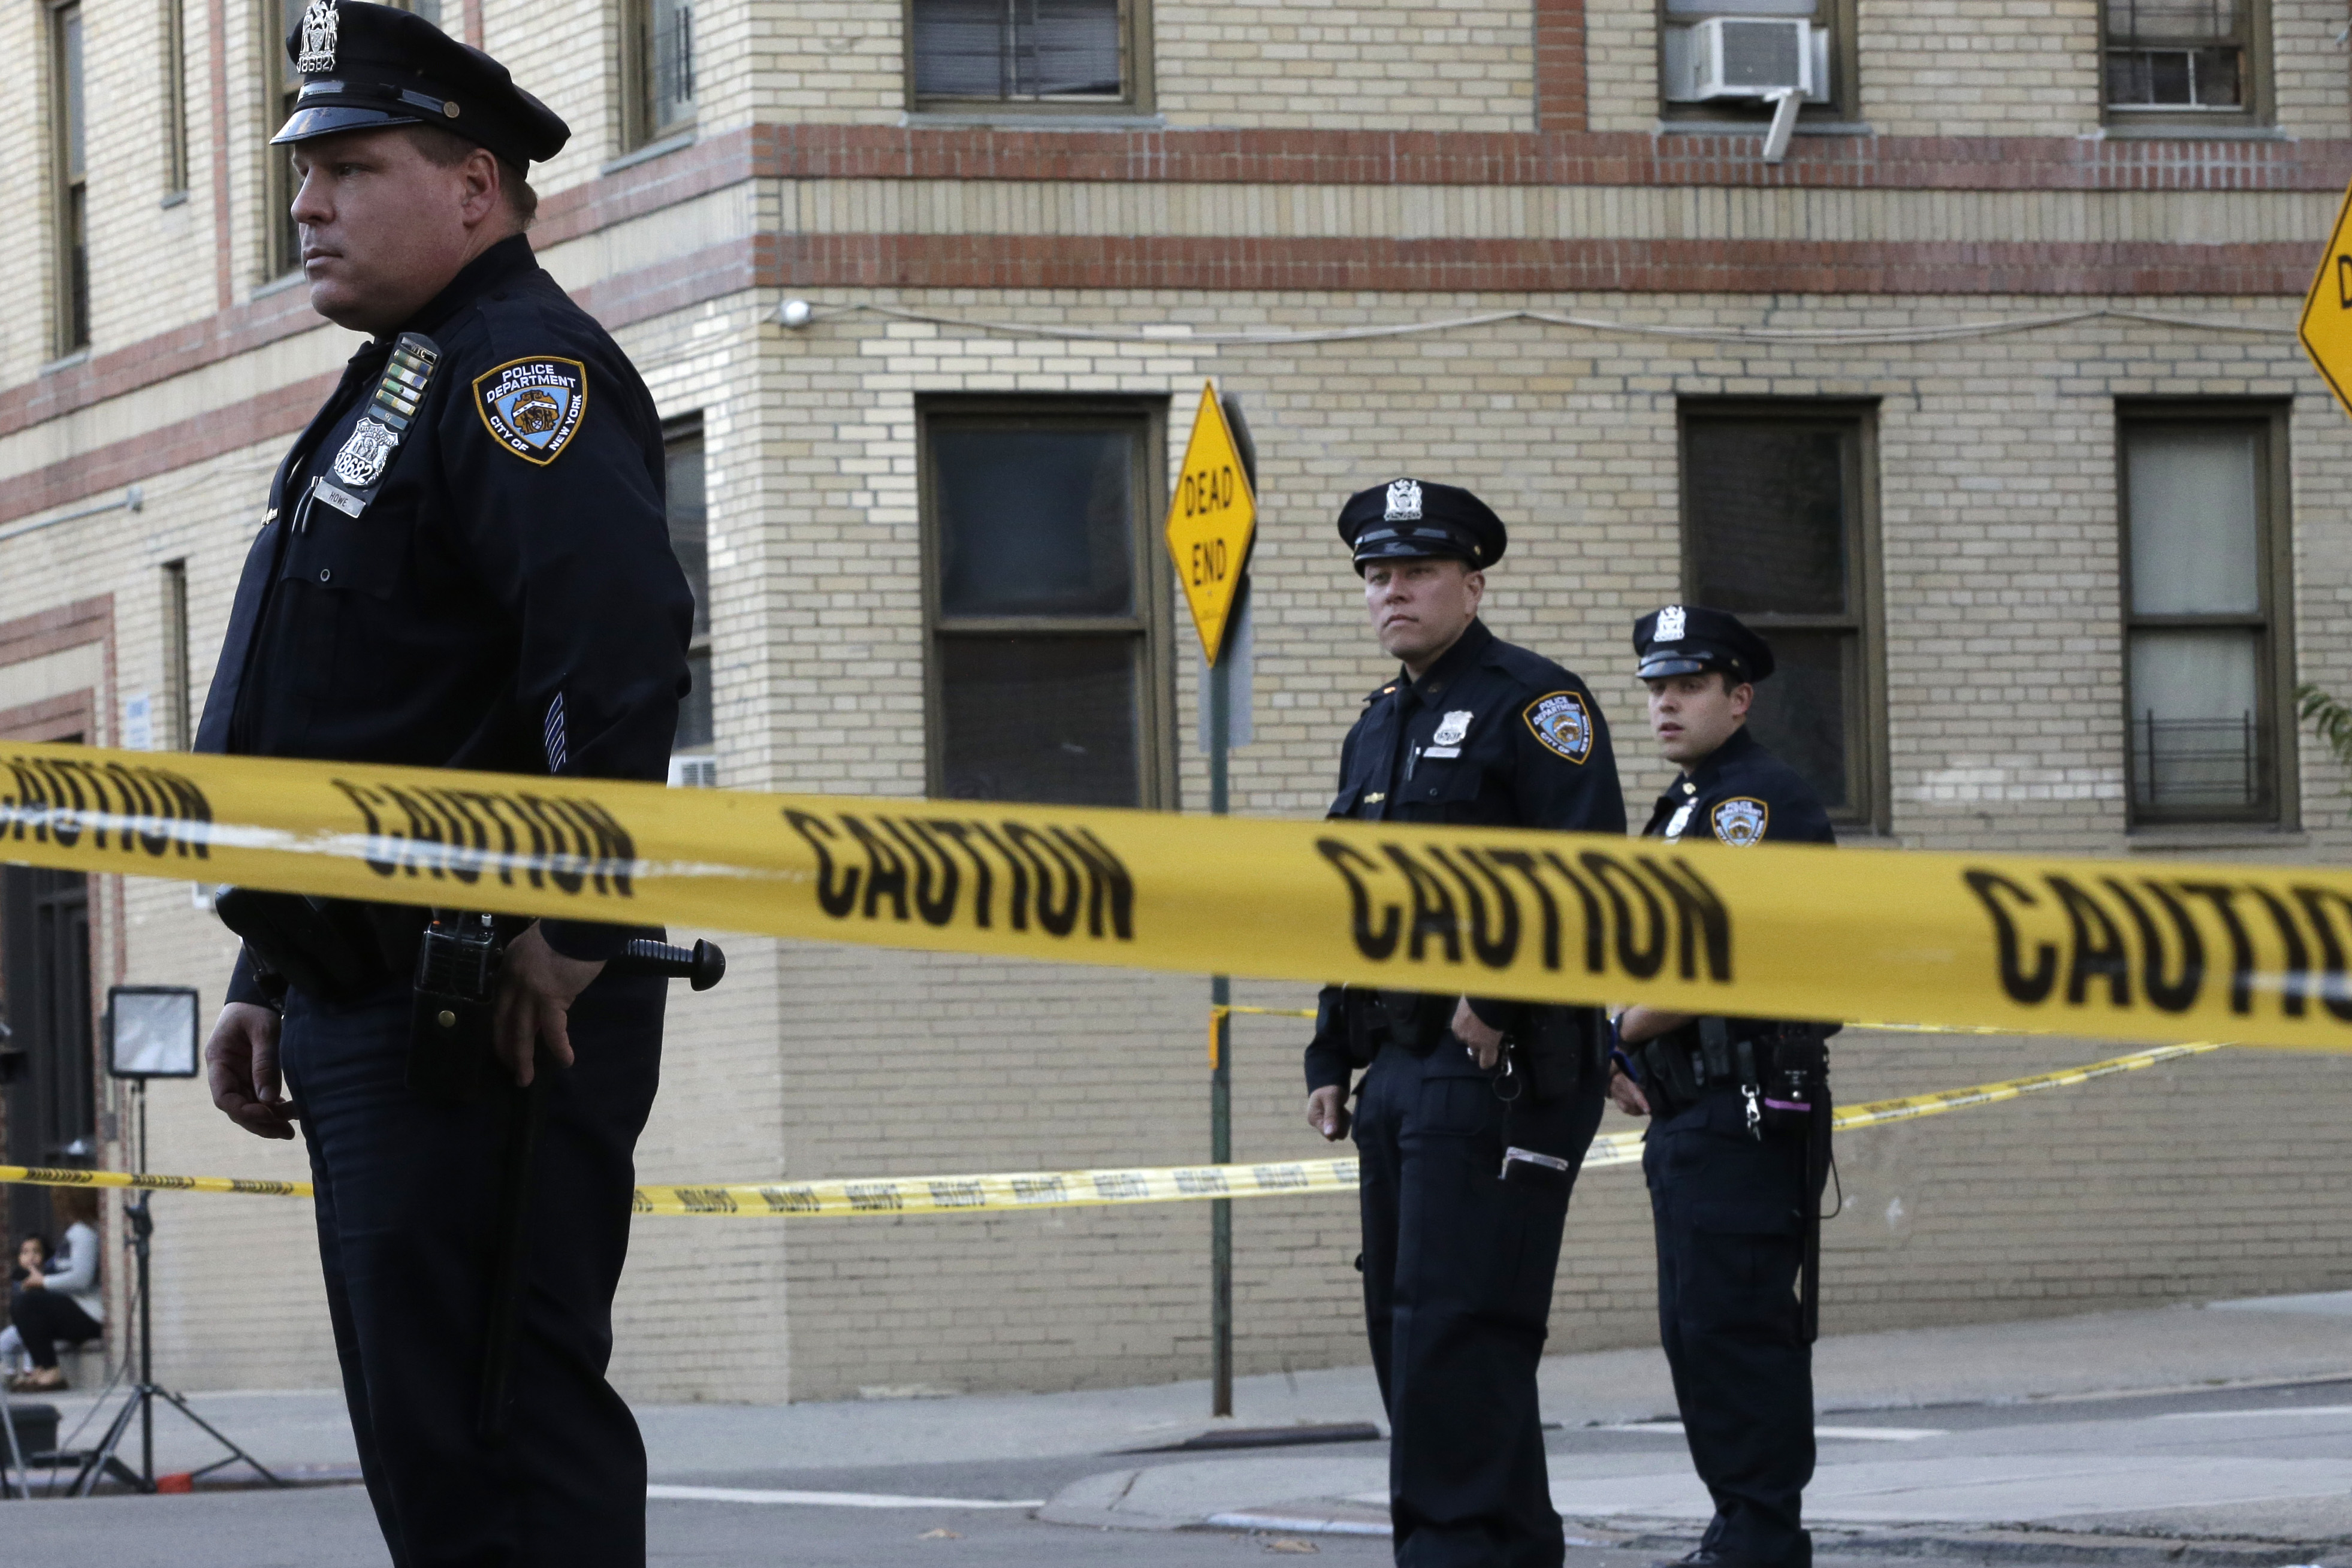 Police officers stand guard near an apartment building in the Bronx borough of New York, on Thursday, October 15, 2015. Photo: AP